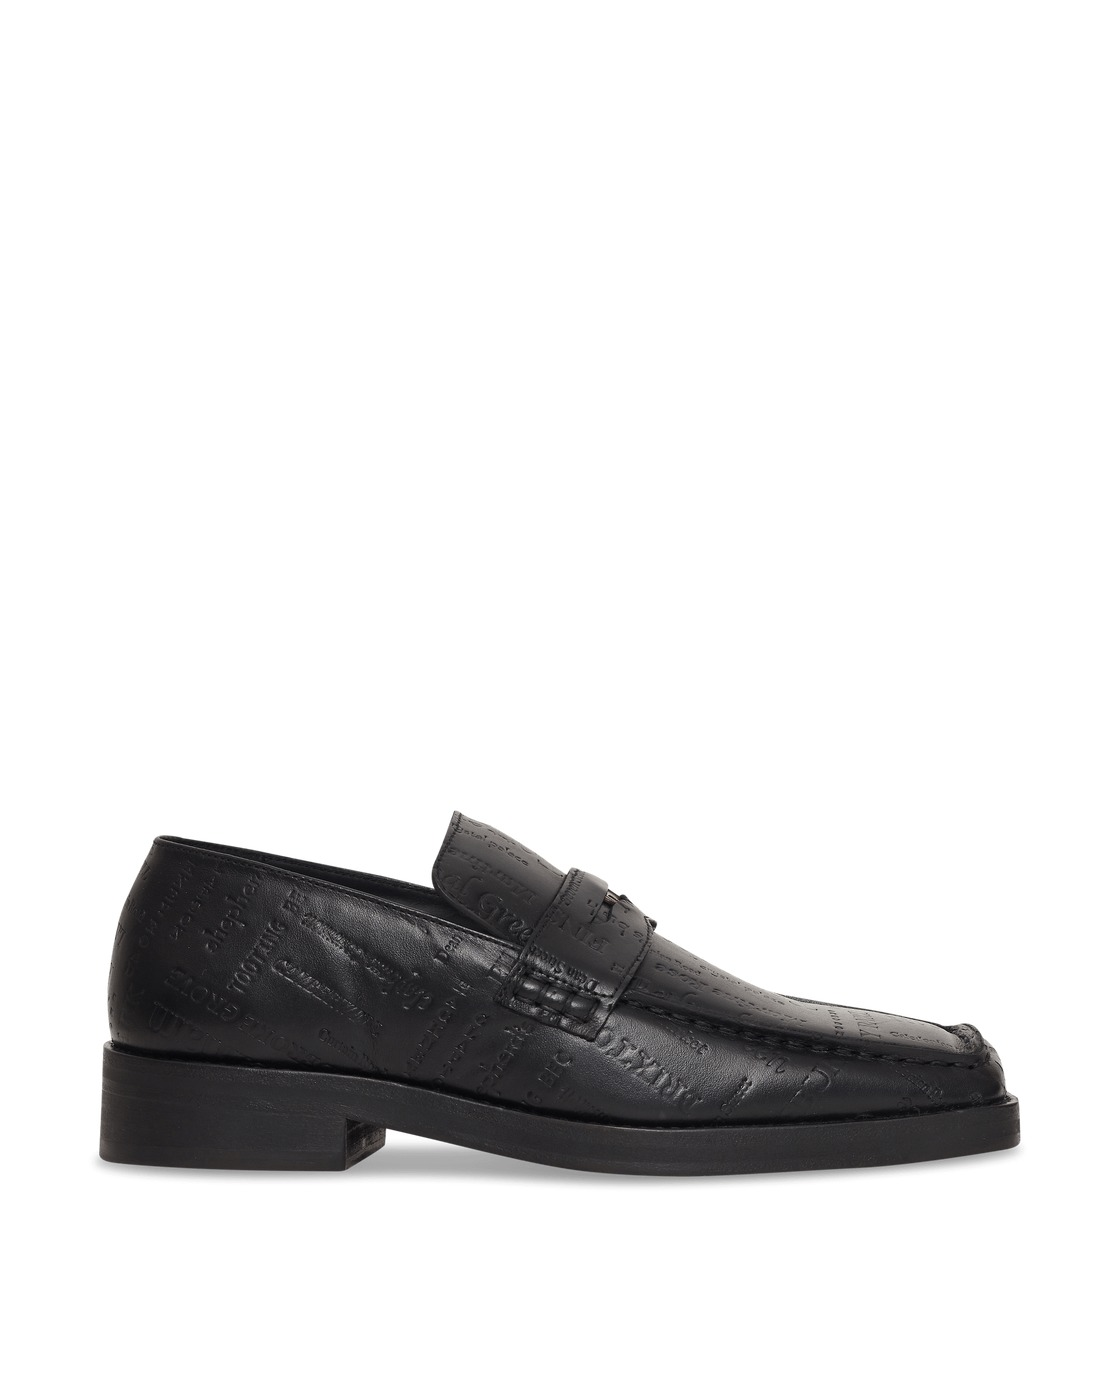 Martine Rose Roxy Embossed Leather Loafers Black/Black